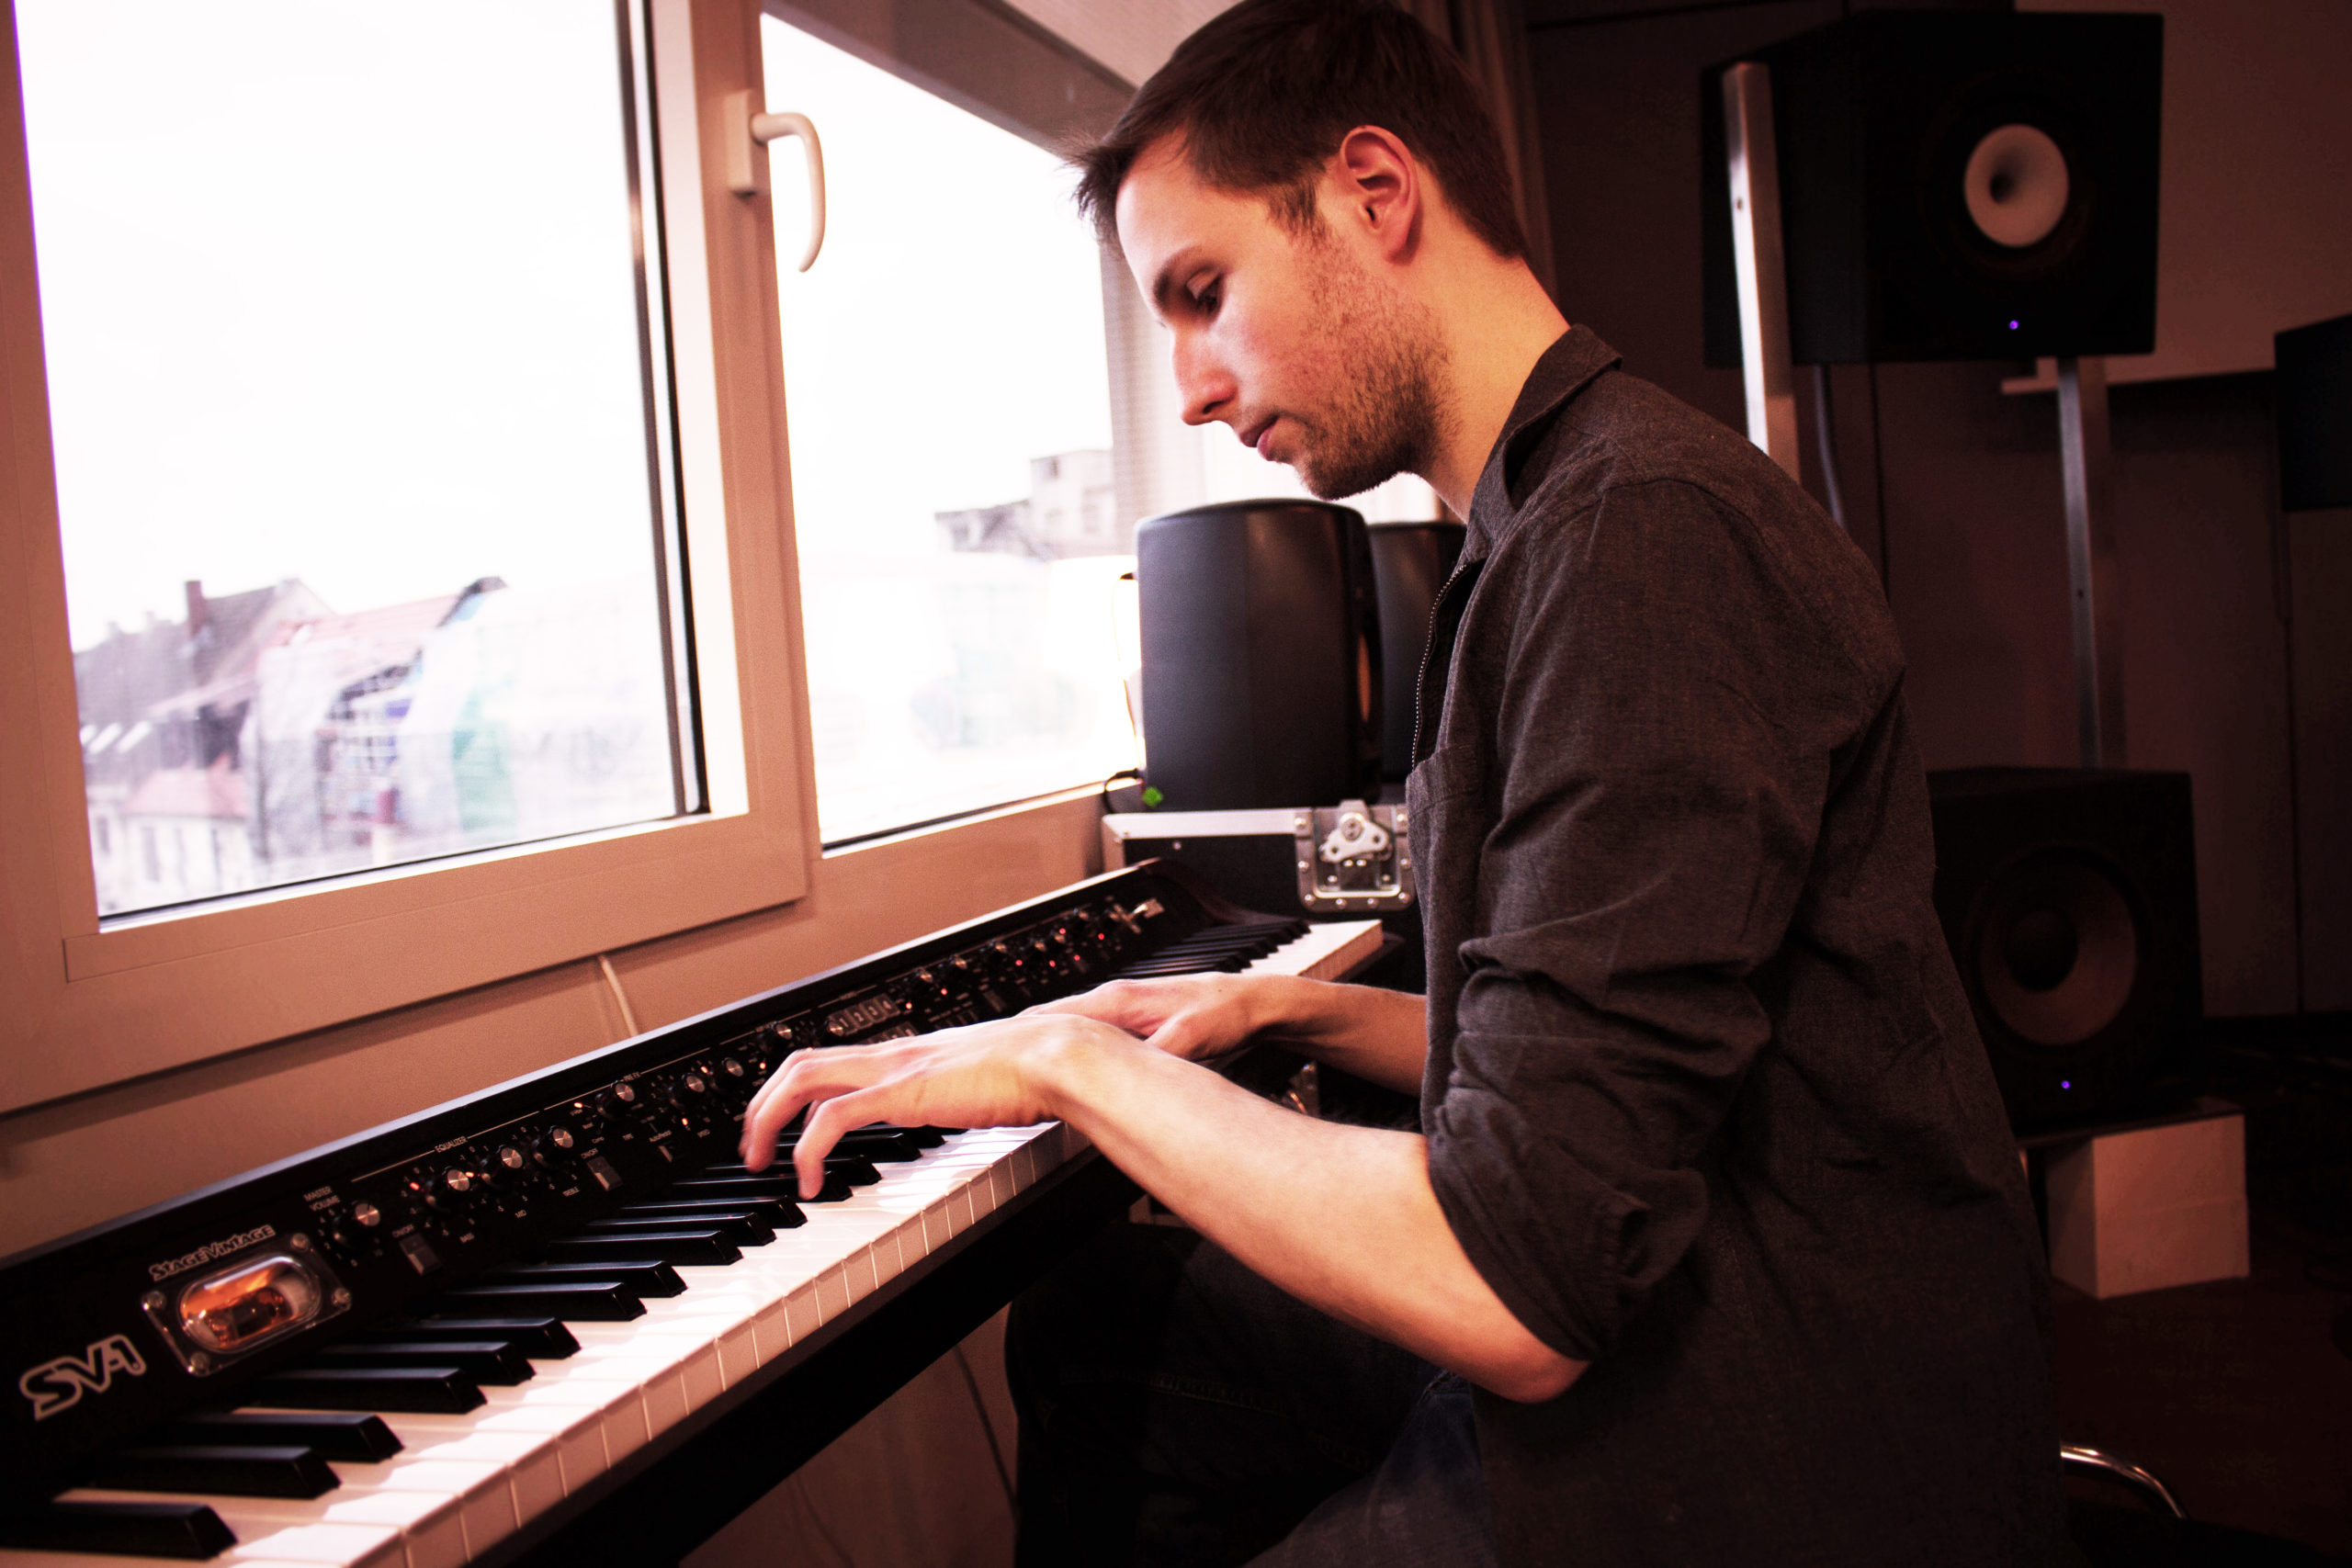 https://timojaegermusic.com/wp-content/uploads/2021/07/Timo-piano-links-scaled.jpg